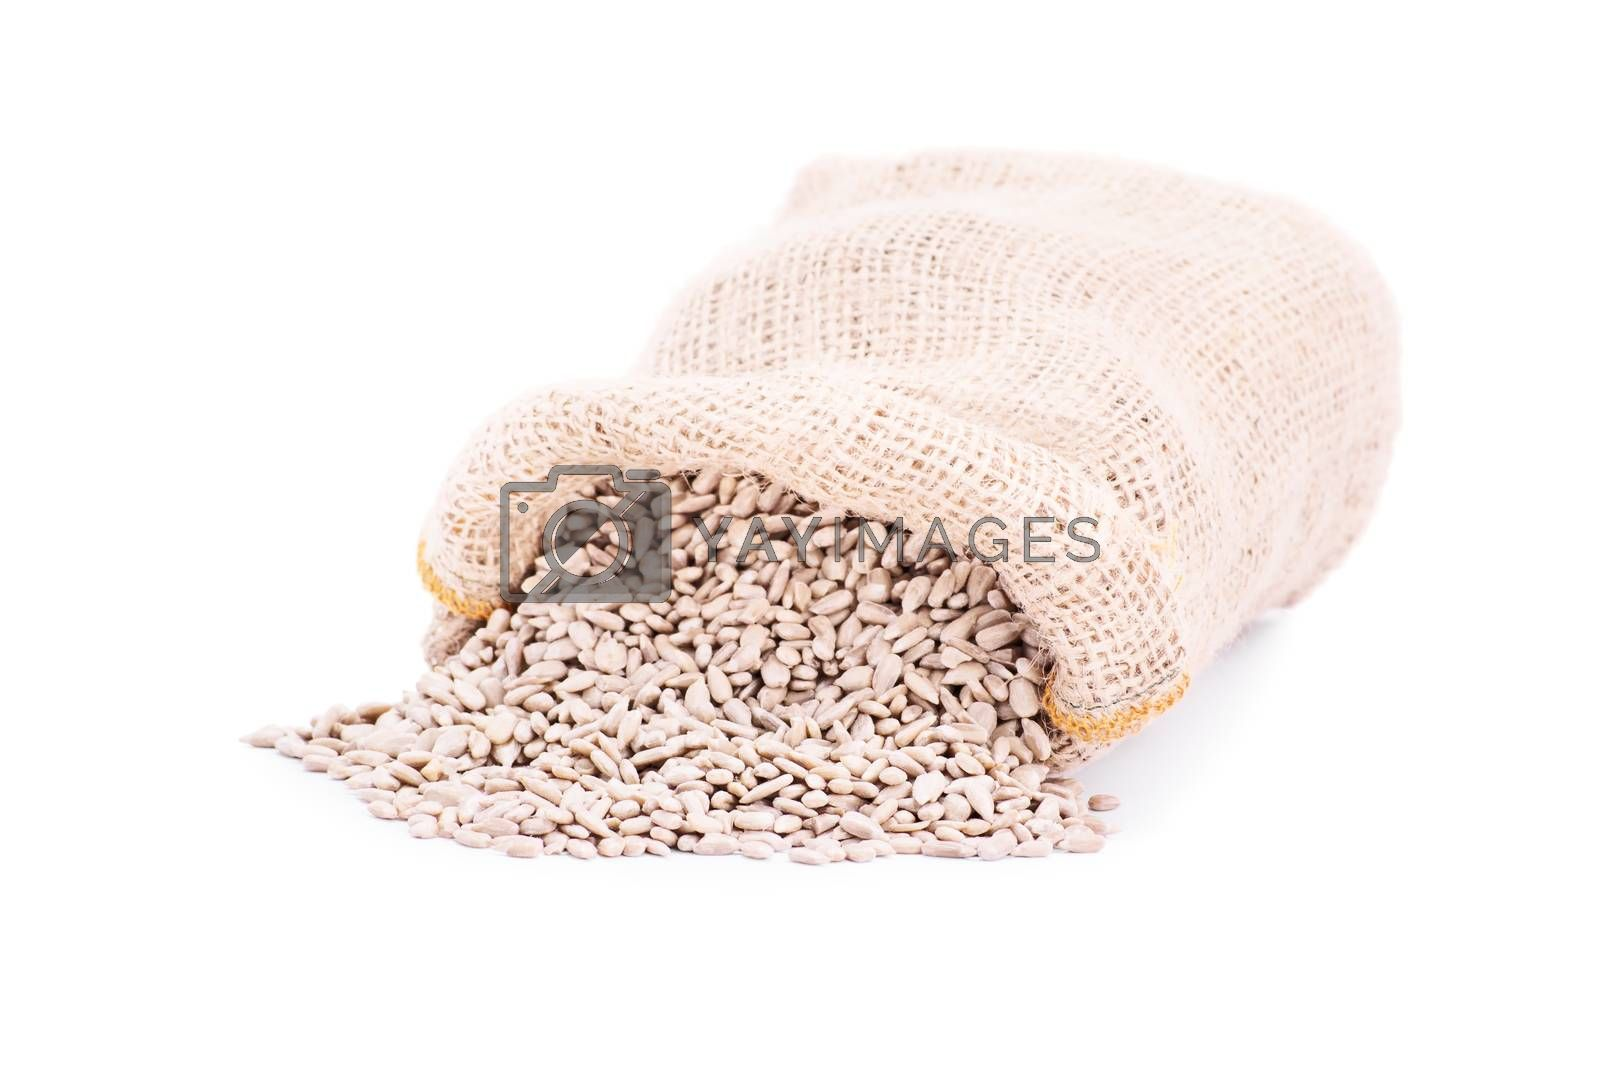 Spilled burlap sack of sunflower seeds, isolated on white background.